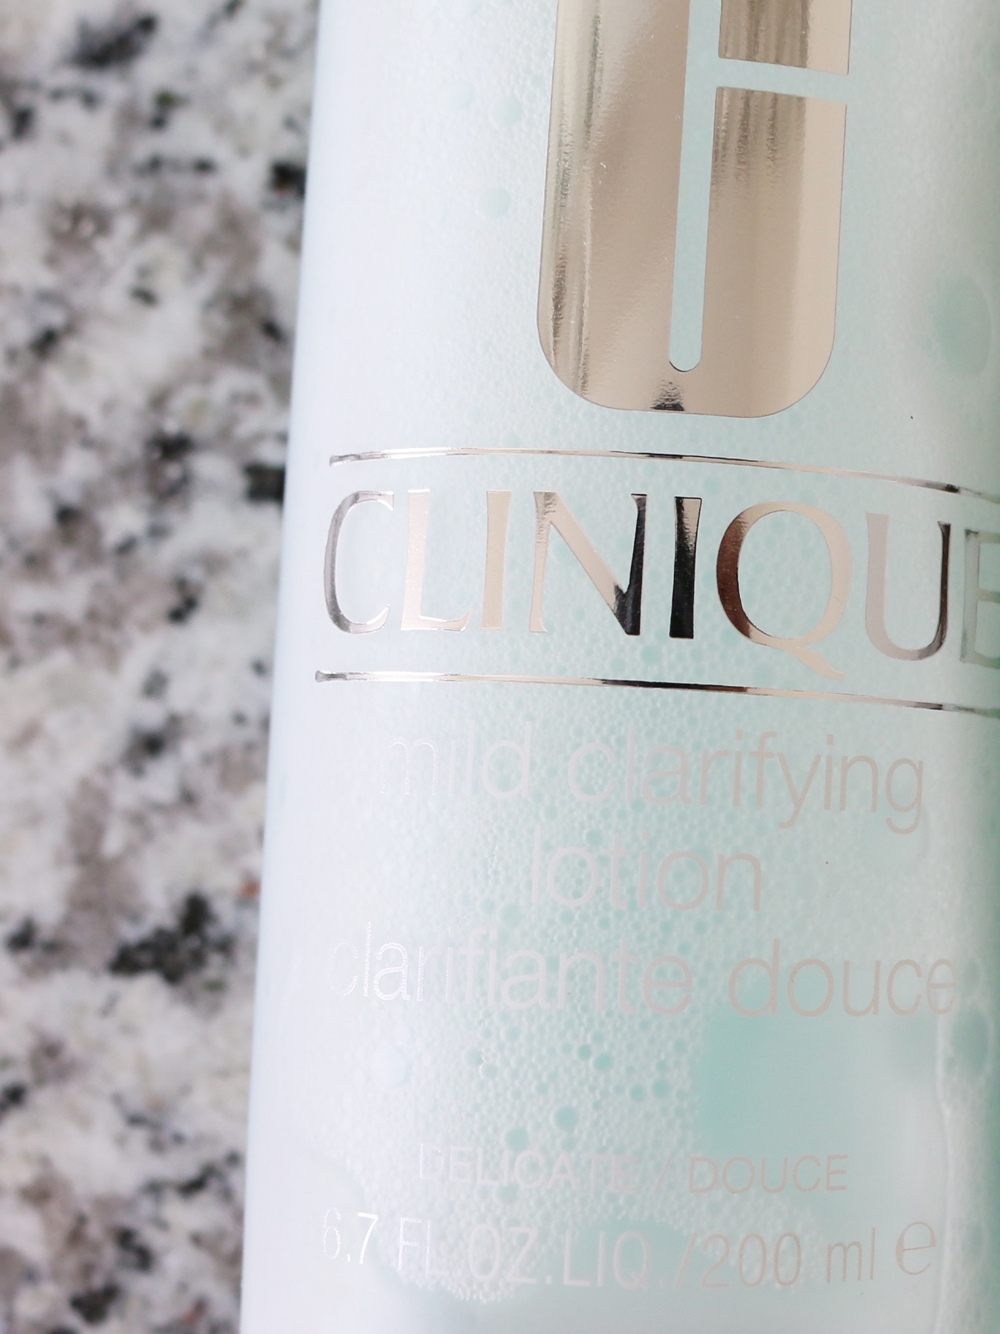 Clinique Mild Clarifying Lotion